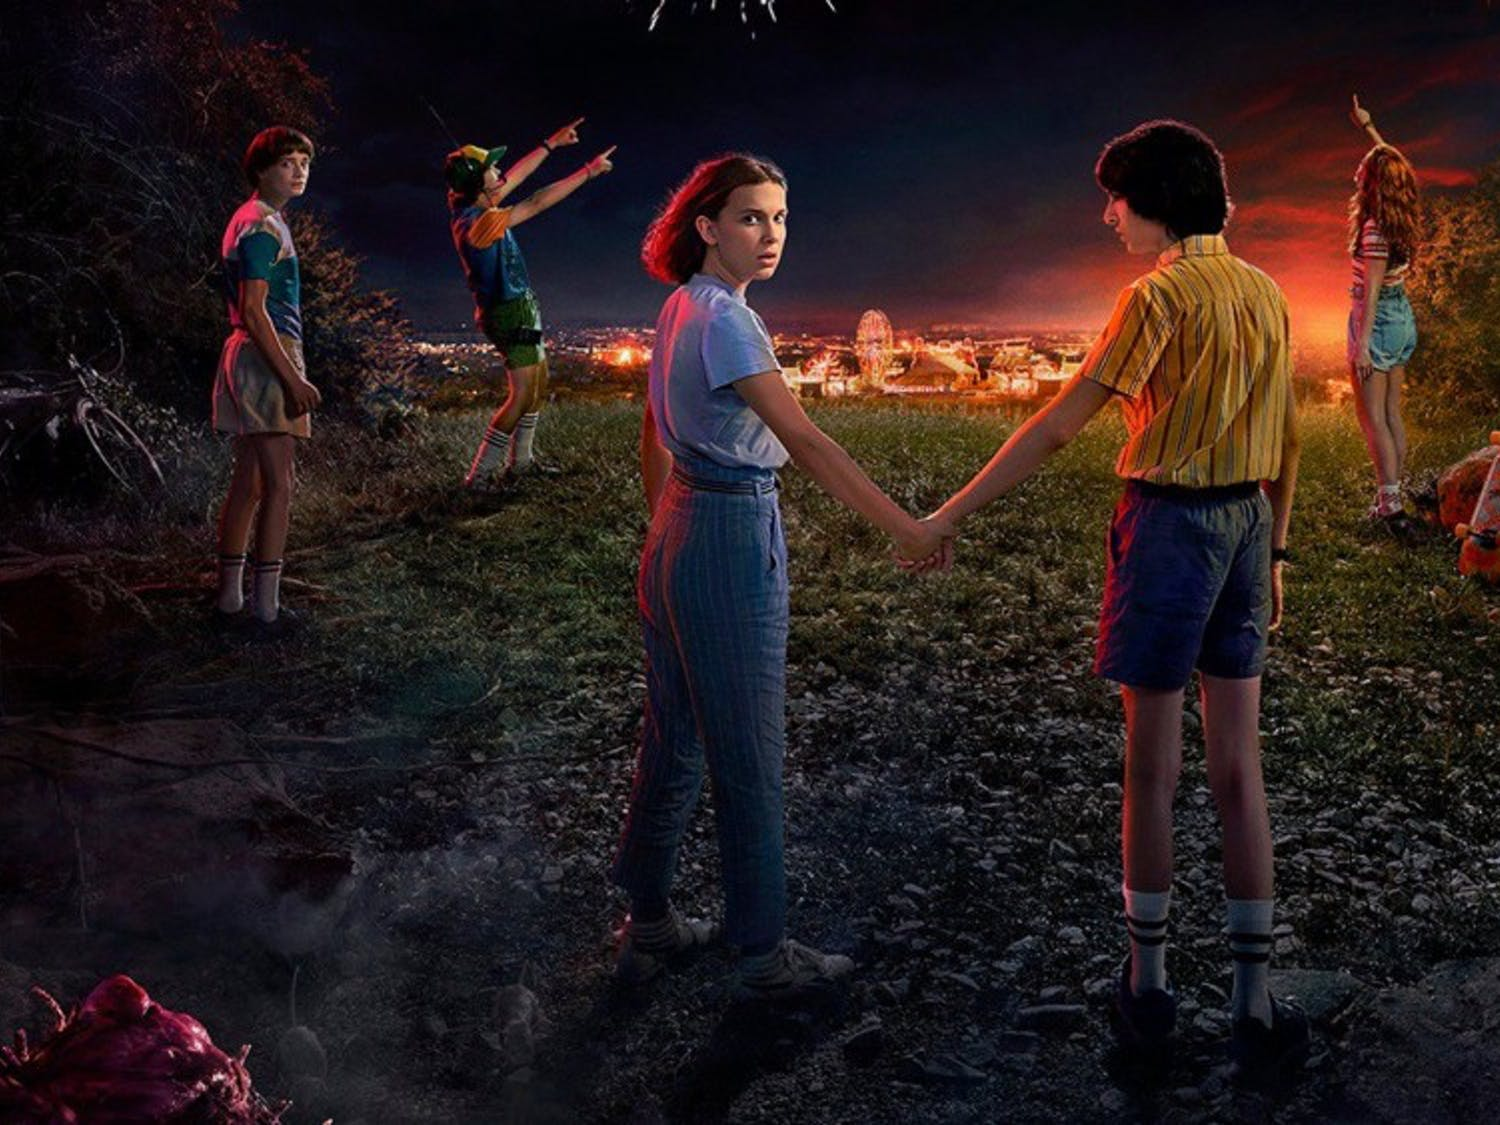 """Stranger Things"" third season will take us back to the Upside Down."